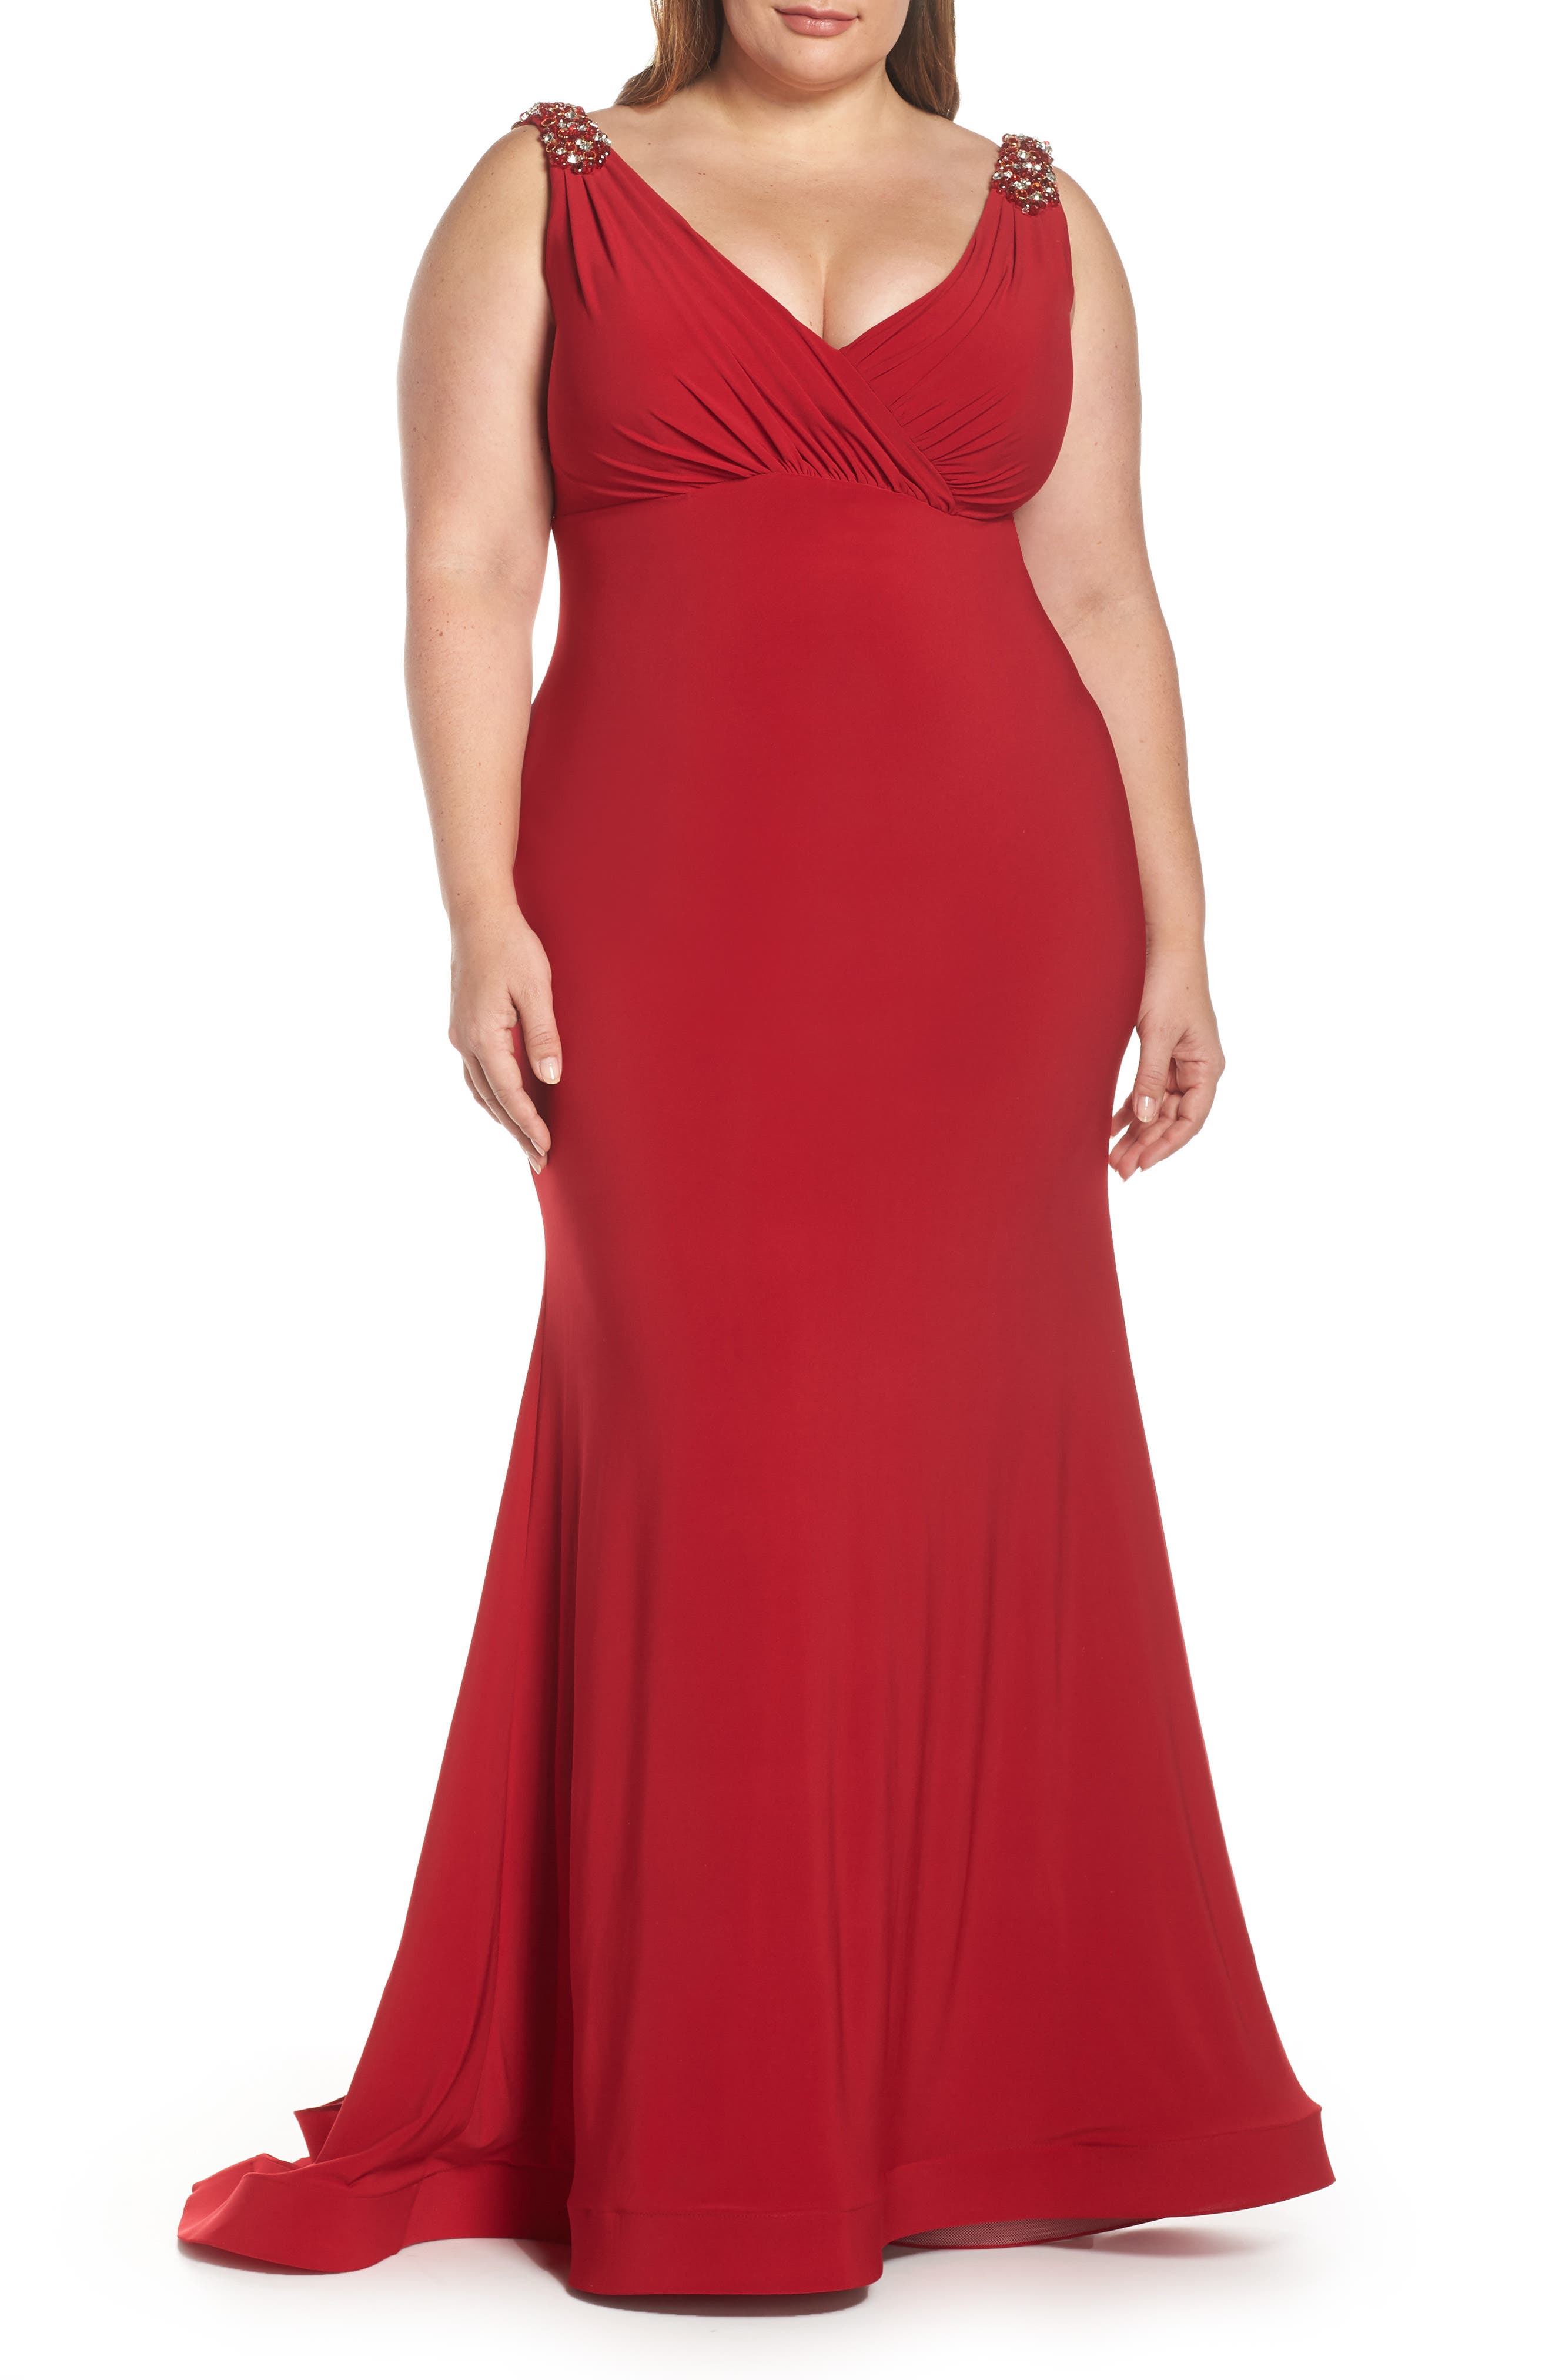 1930s Evening Dresses | Old Hollywood Dress Plus Size Womens MAC Duggal Embellished Trumpet Evening Dress Size 24W - Red $398.00 AT vintagedancer.com